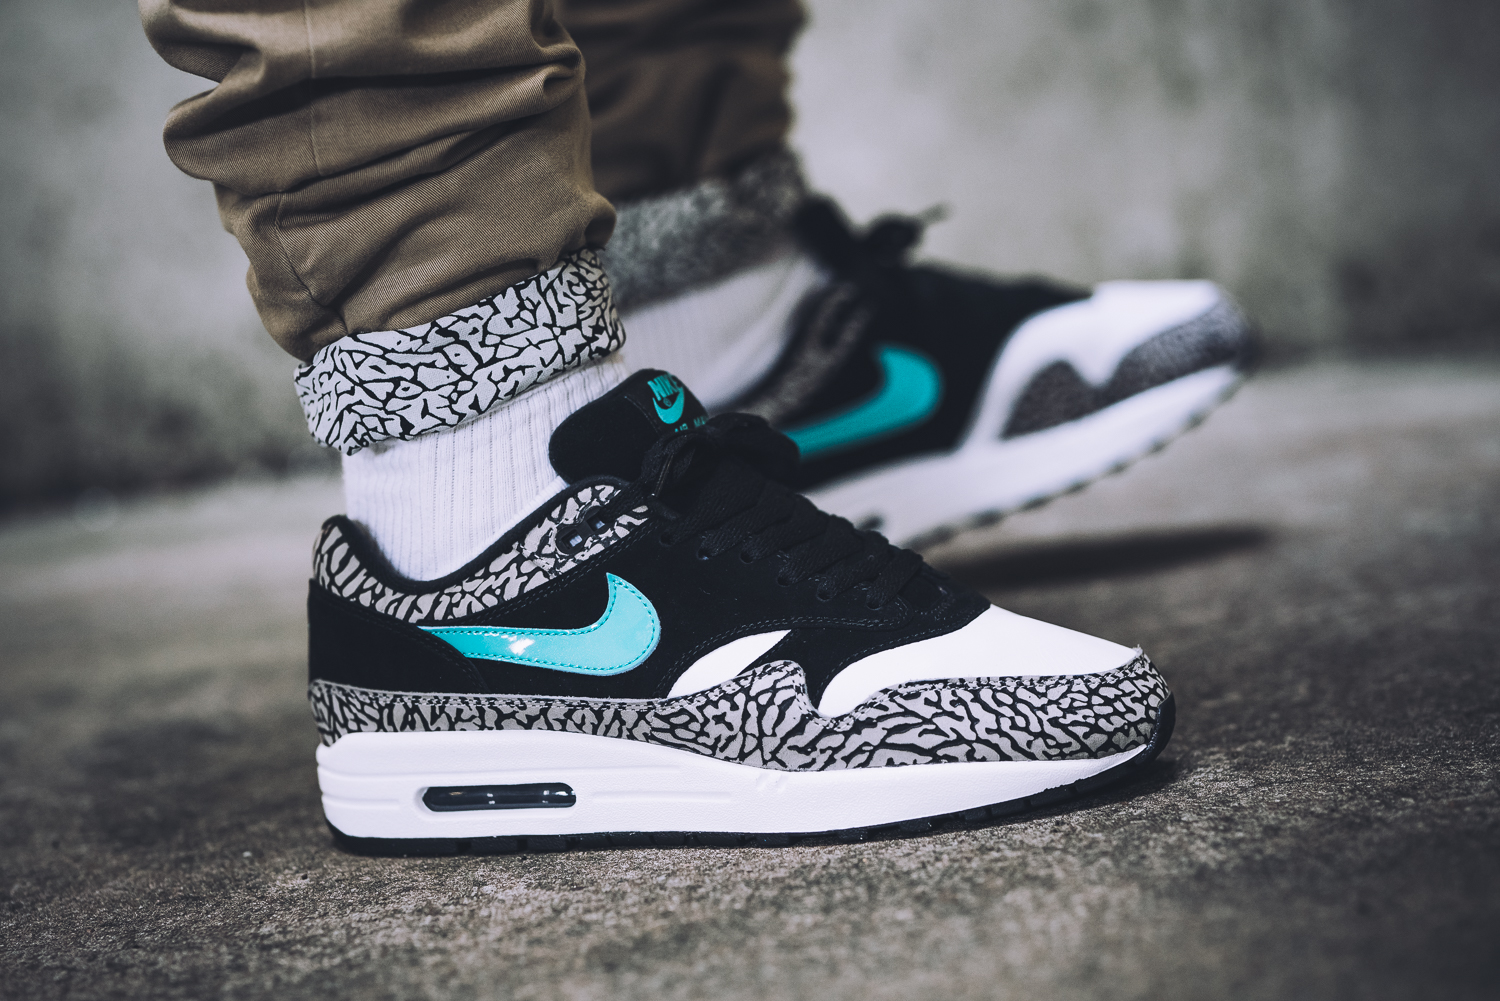 312748 031 Premium Atmos Elephant Safari Nike Air Max 1 Mens